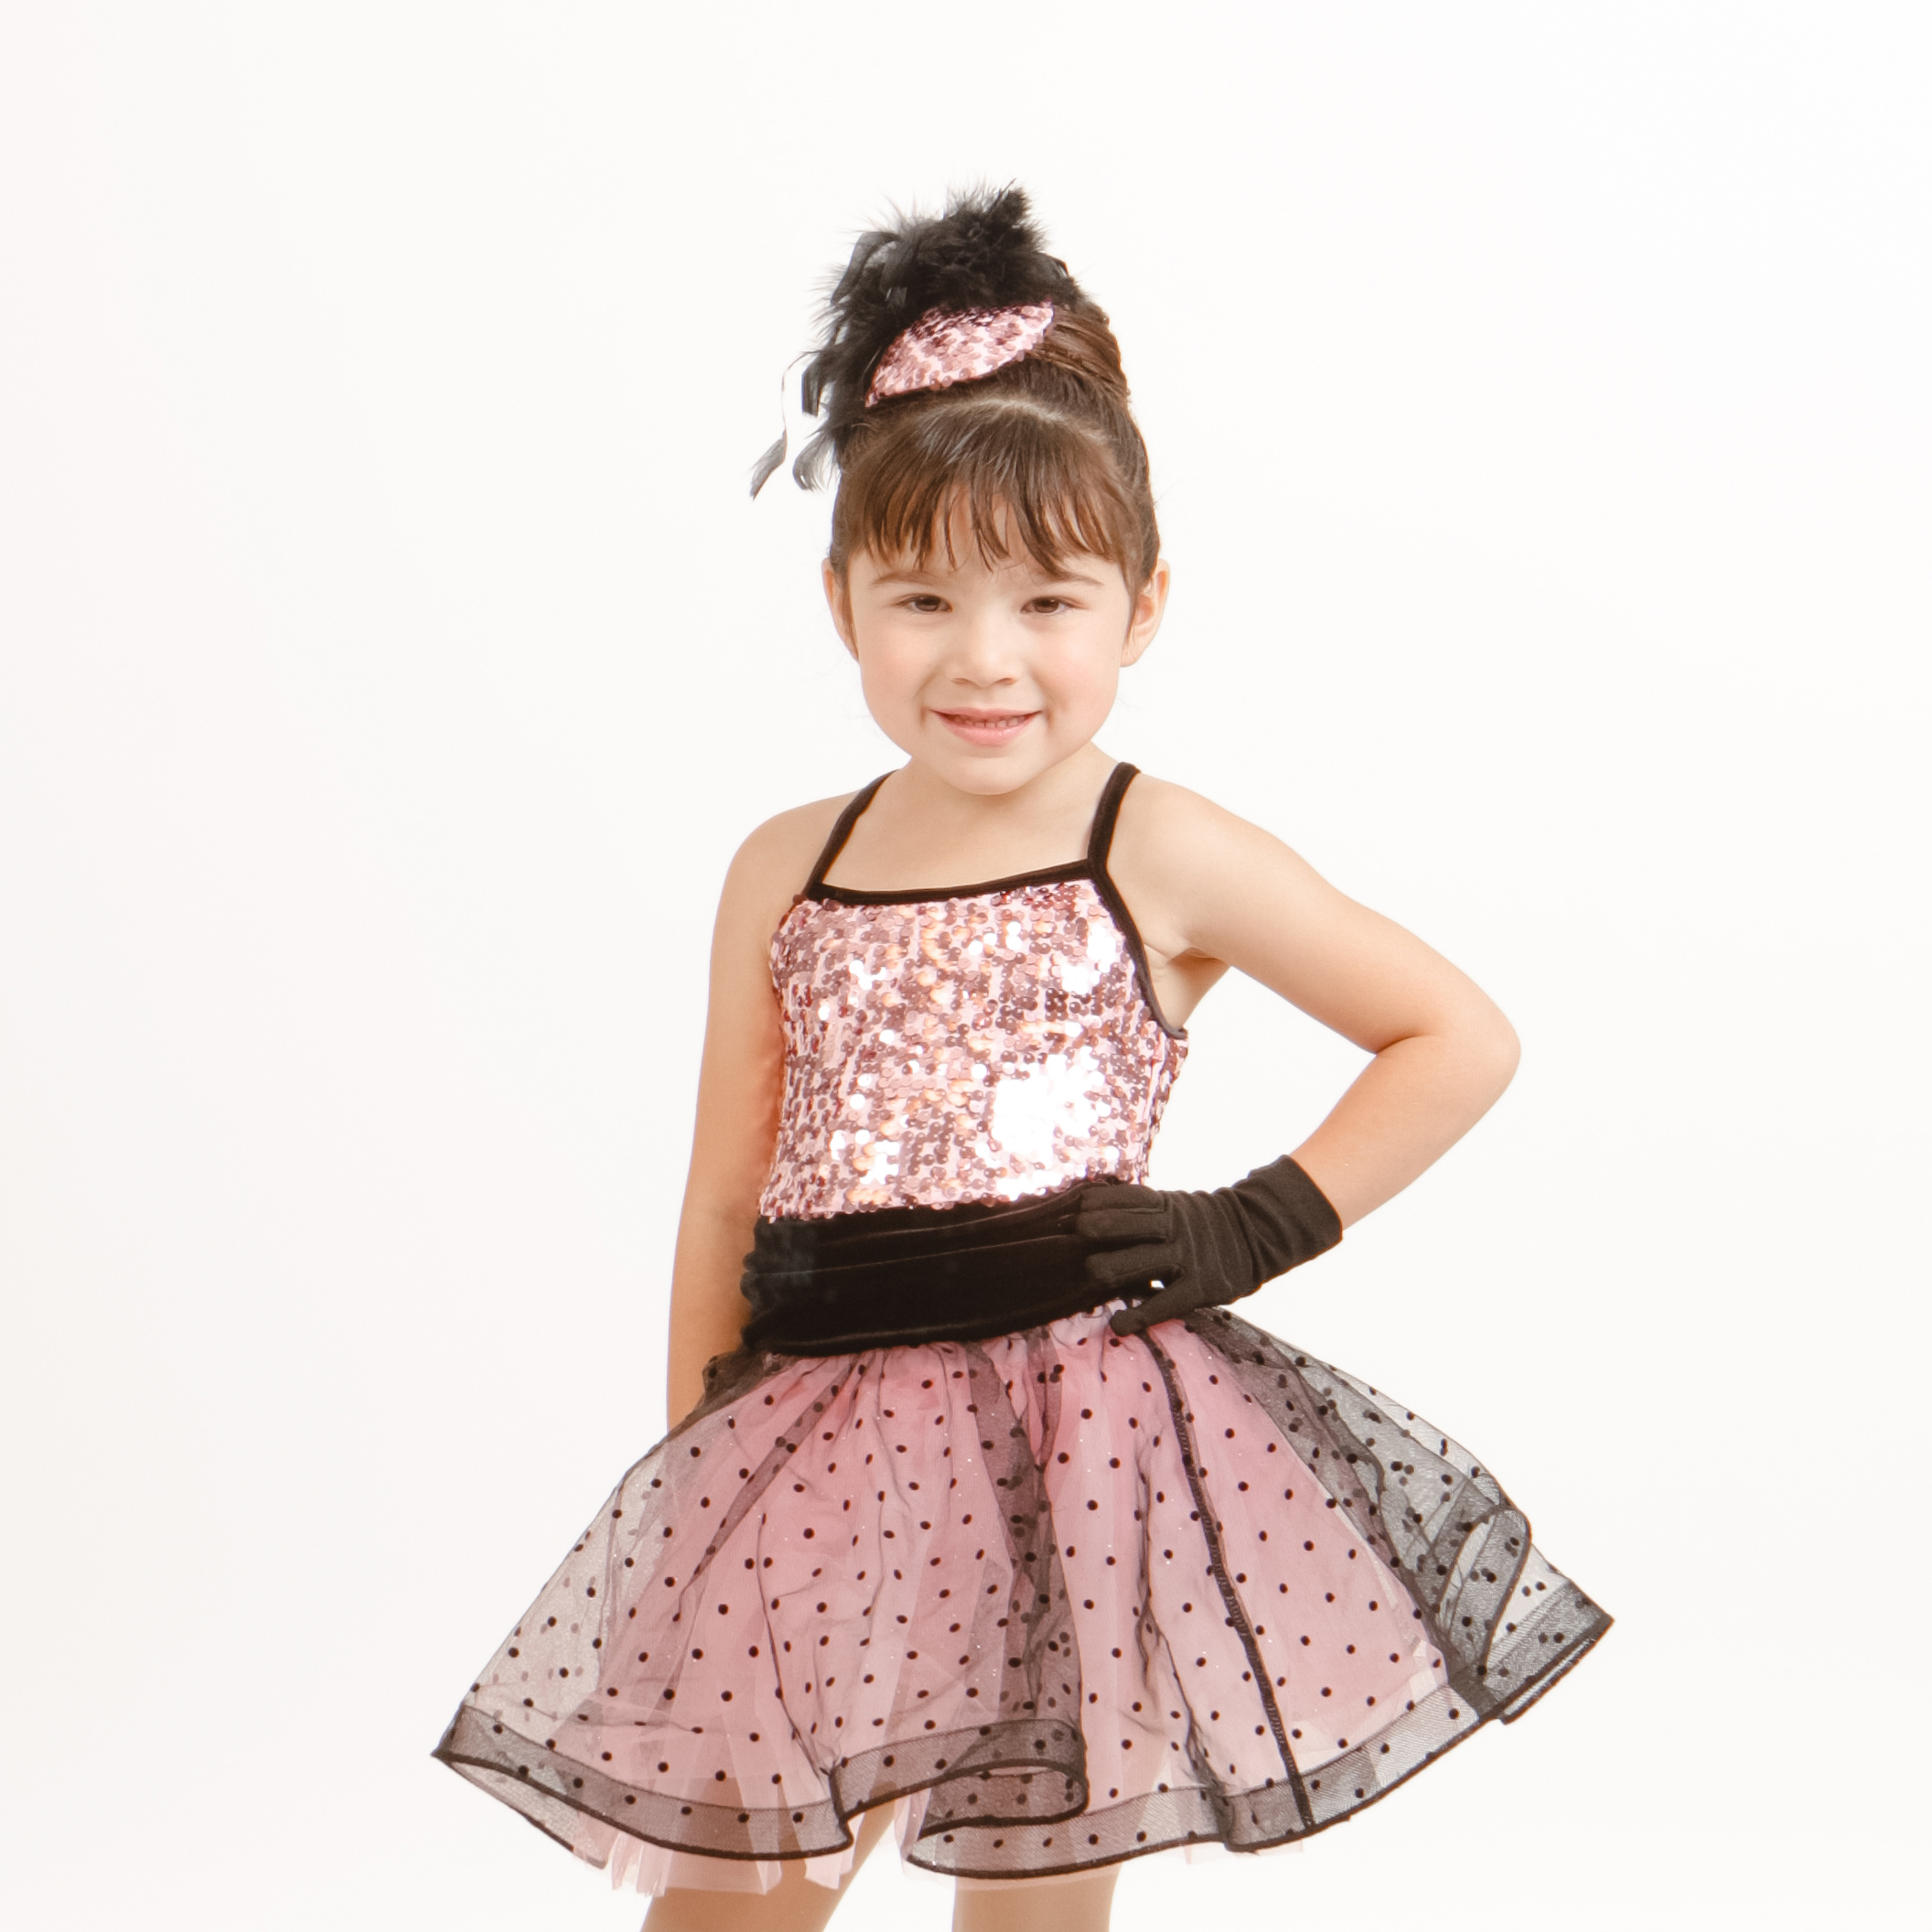 Combo - Ages 3-5. Beginning Jazz, Ballet, Tumbling and Tap will be taught each week in this fun, one-hour class. Dancers must be completely potty trained in order to participate in this class. Students will need pink ballet shoes and black tap shoes.